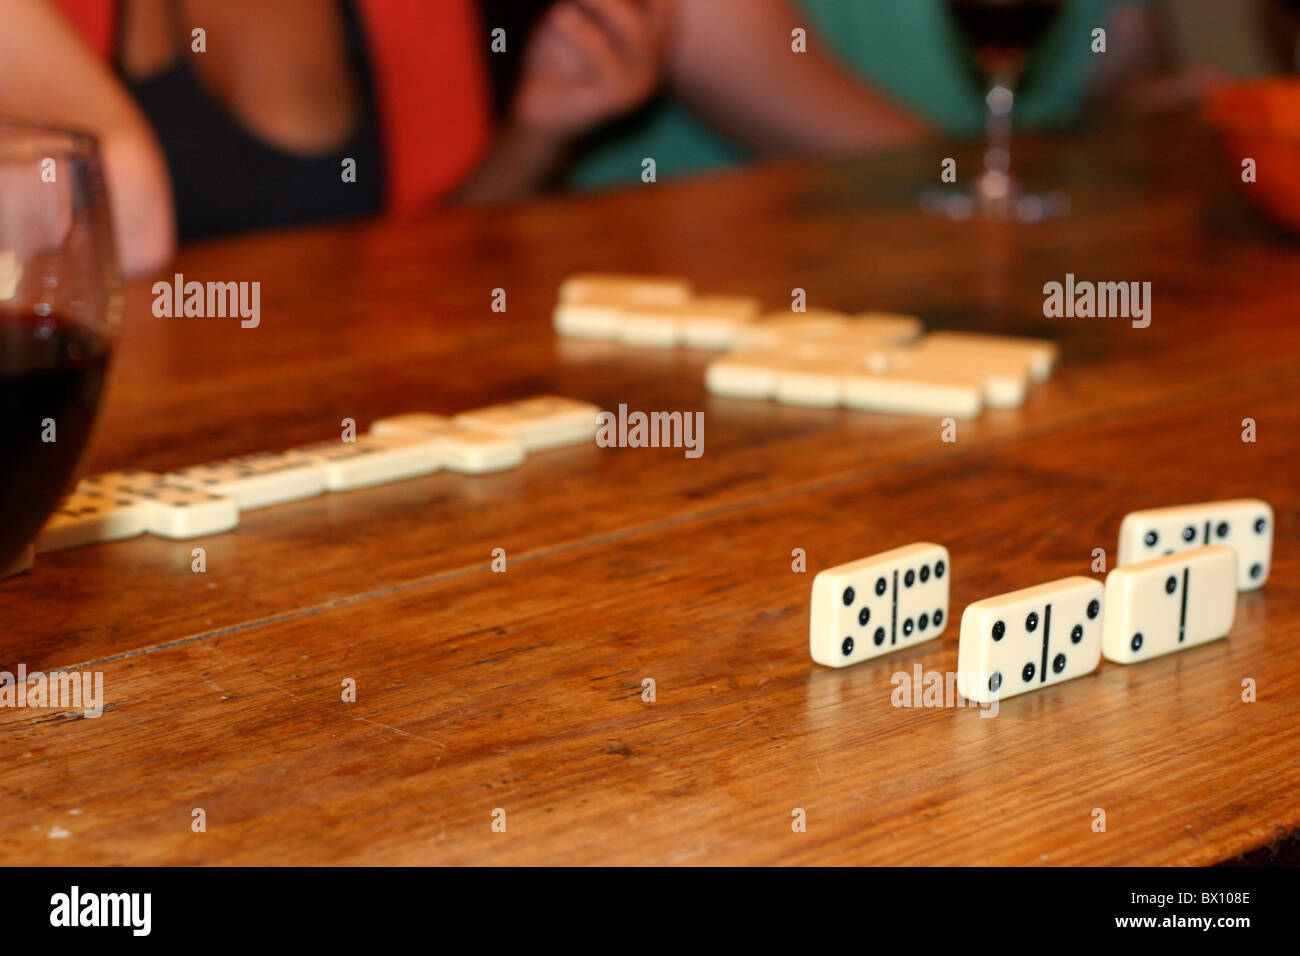 Domino's on wooden table - Stock Image